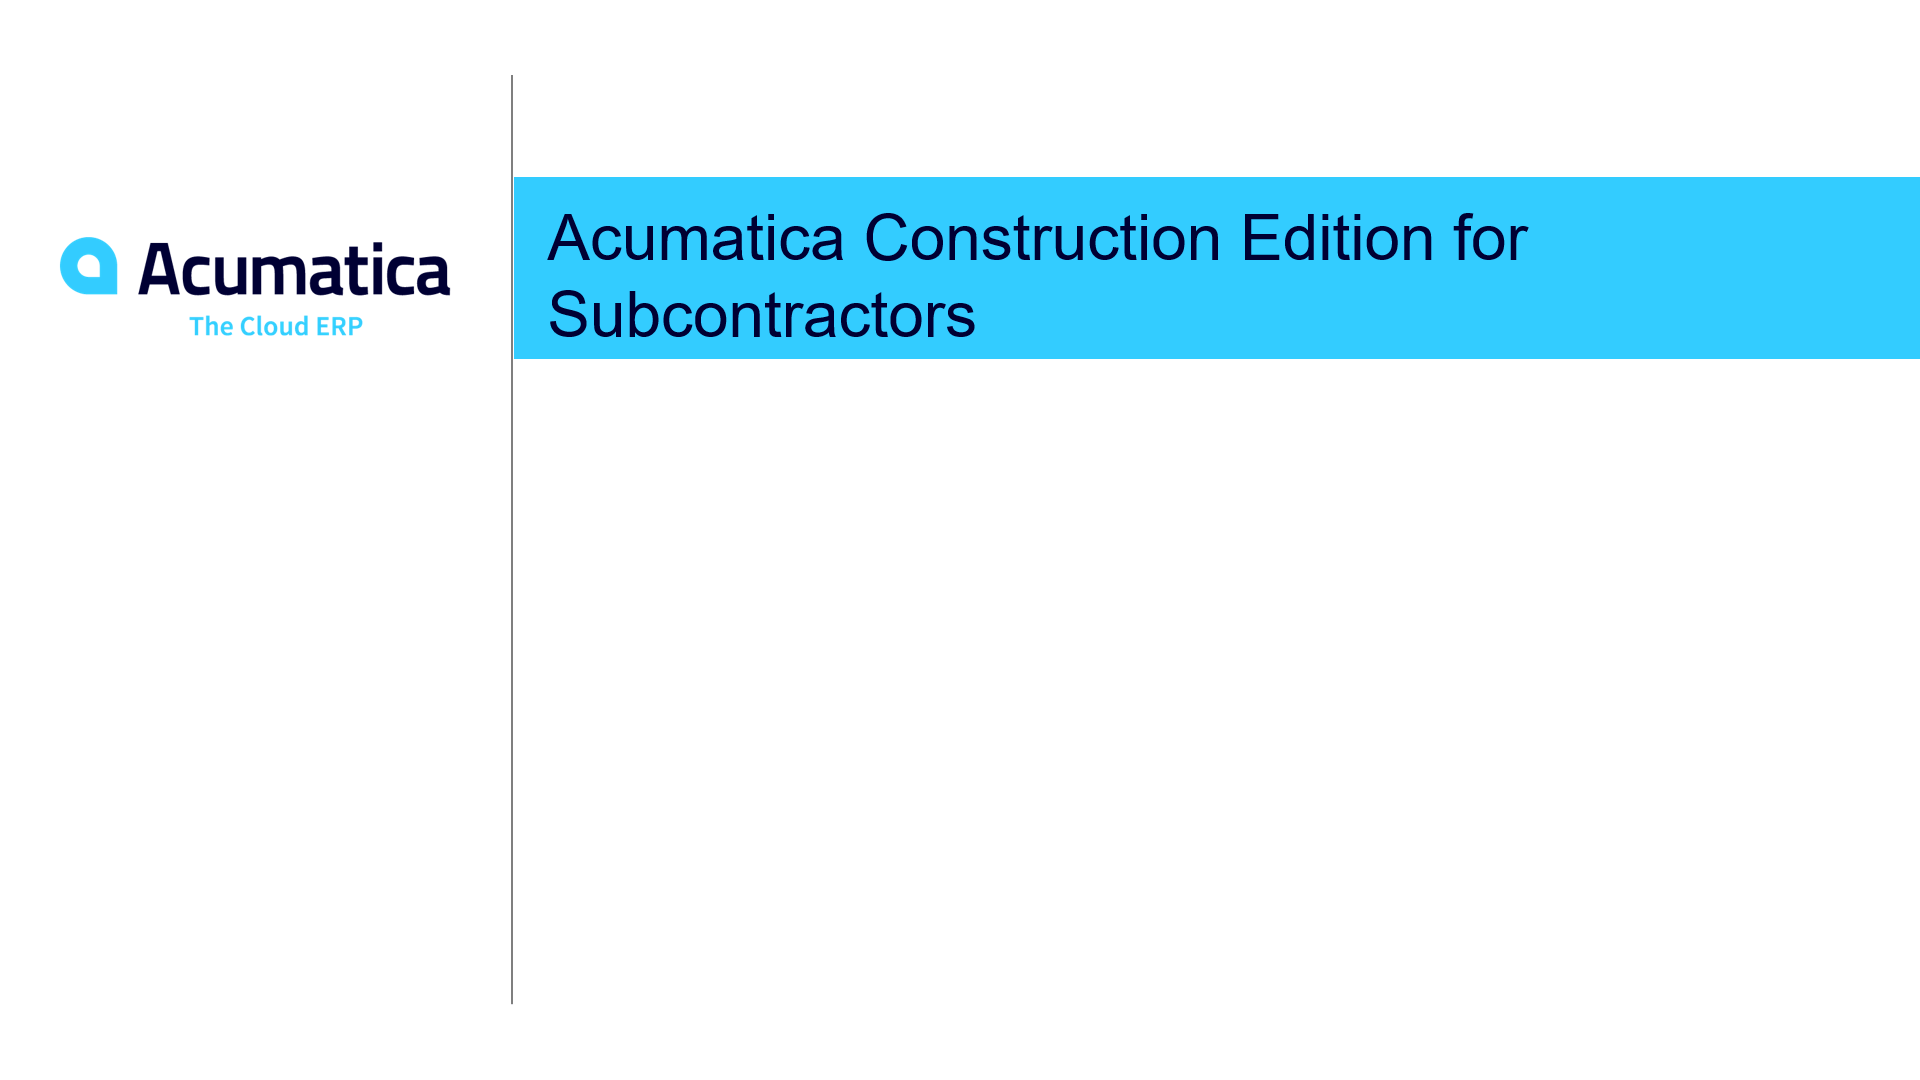 Acumatica Construction Edition for Subcontractors